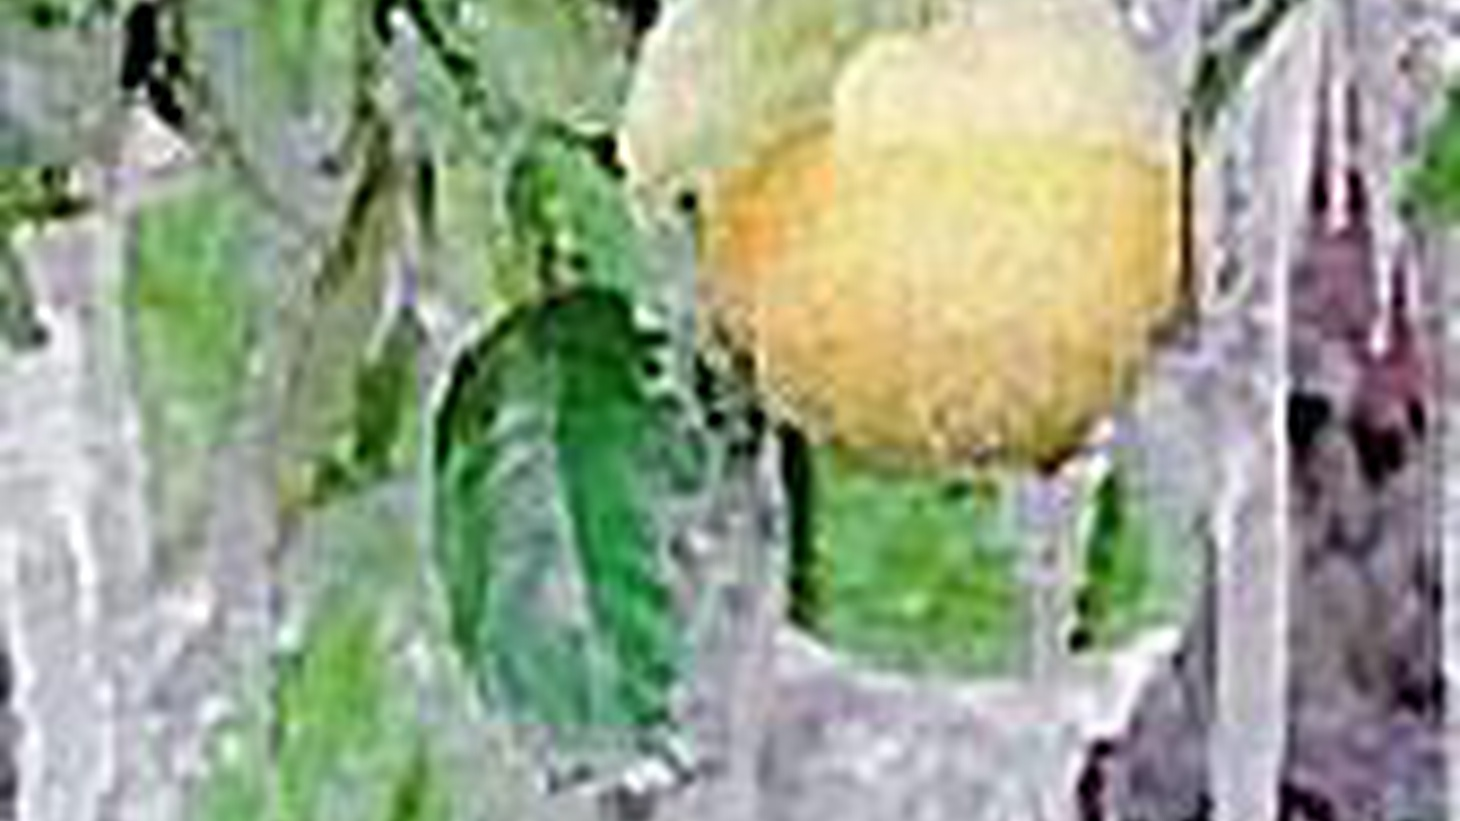 This week's record cold-snap in California has reached areas that are usually immune to freezing. That's bad news for leafy greens, avocados, strawberries and blueberries. But the crop hardest hit appears to be oranges. We update the damage and look at the importance of oranges to the history of California. Plus, tomorrow's the deadline for billionaires--or anyone else--to bid for the Los Angeles Times.